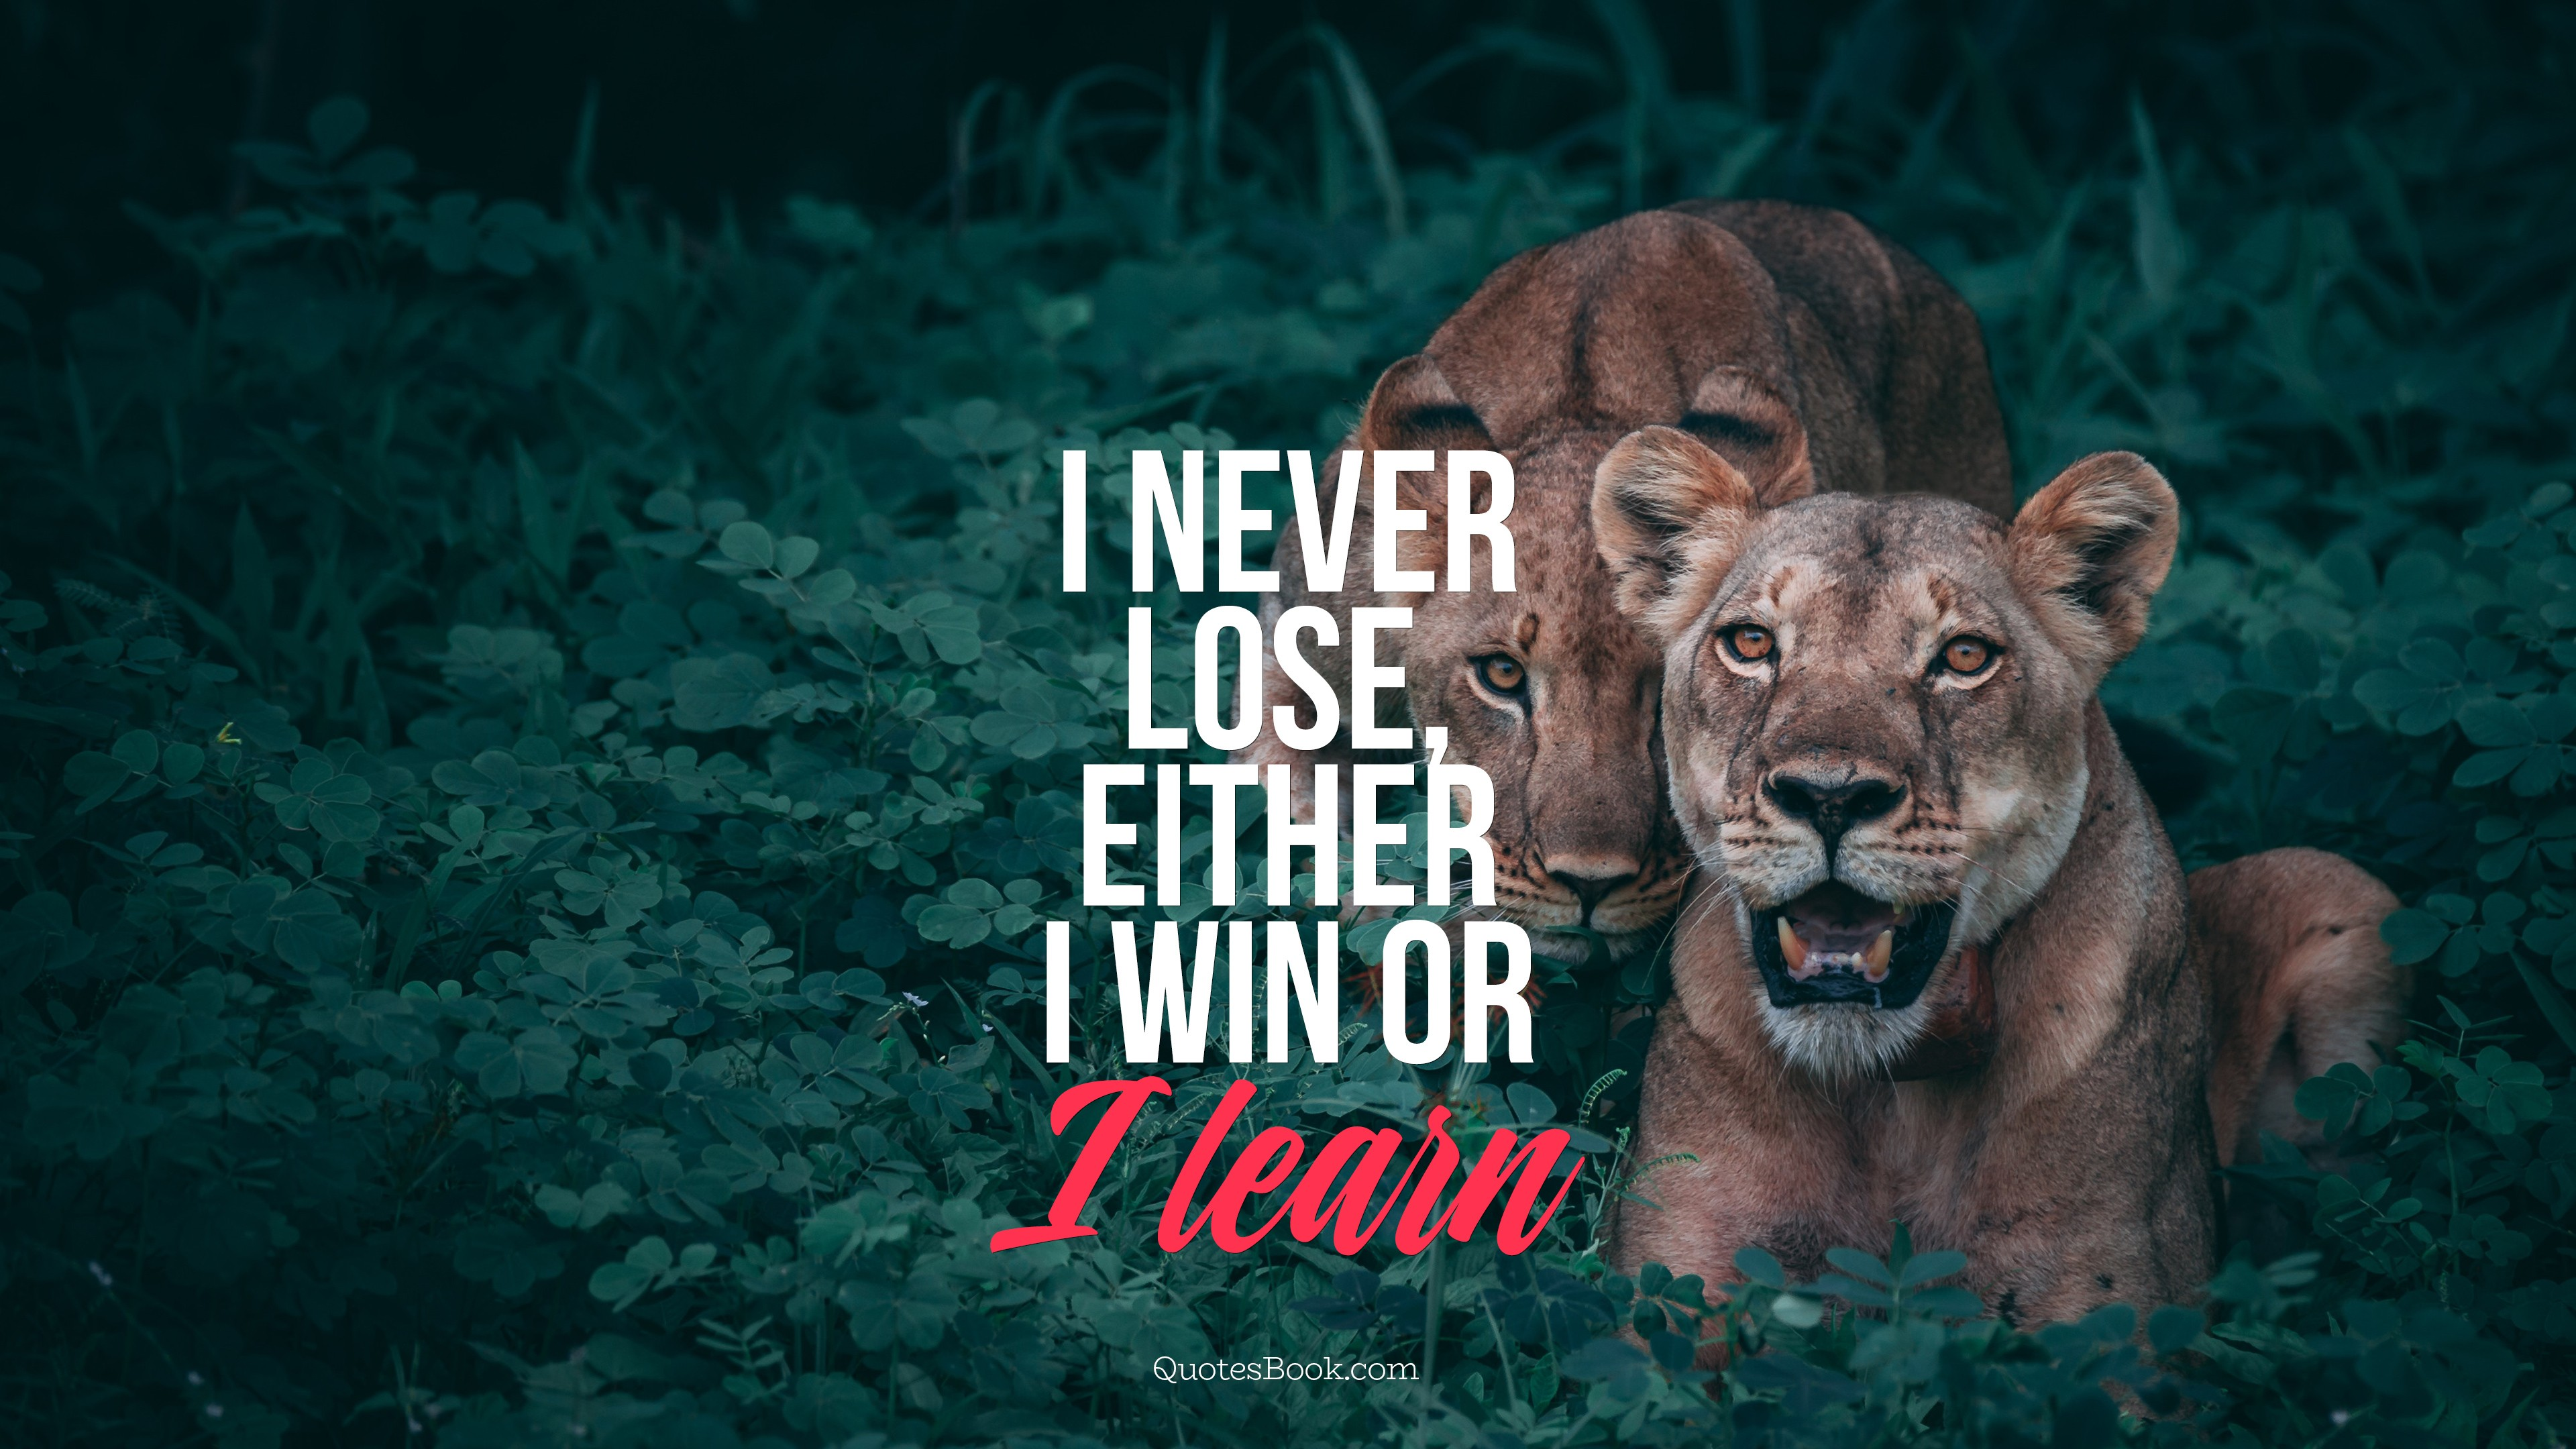 I Never Lose Either I Win Or I Learn Quotesbook